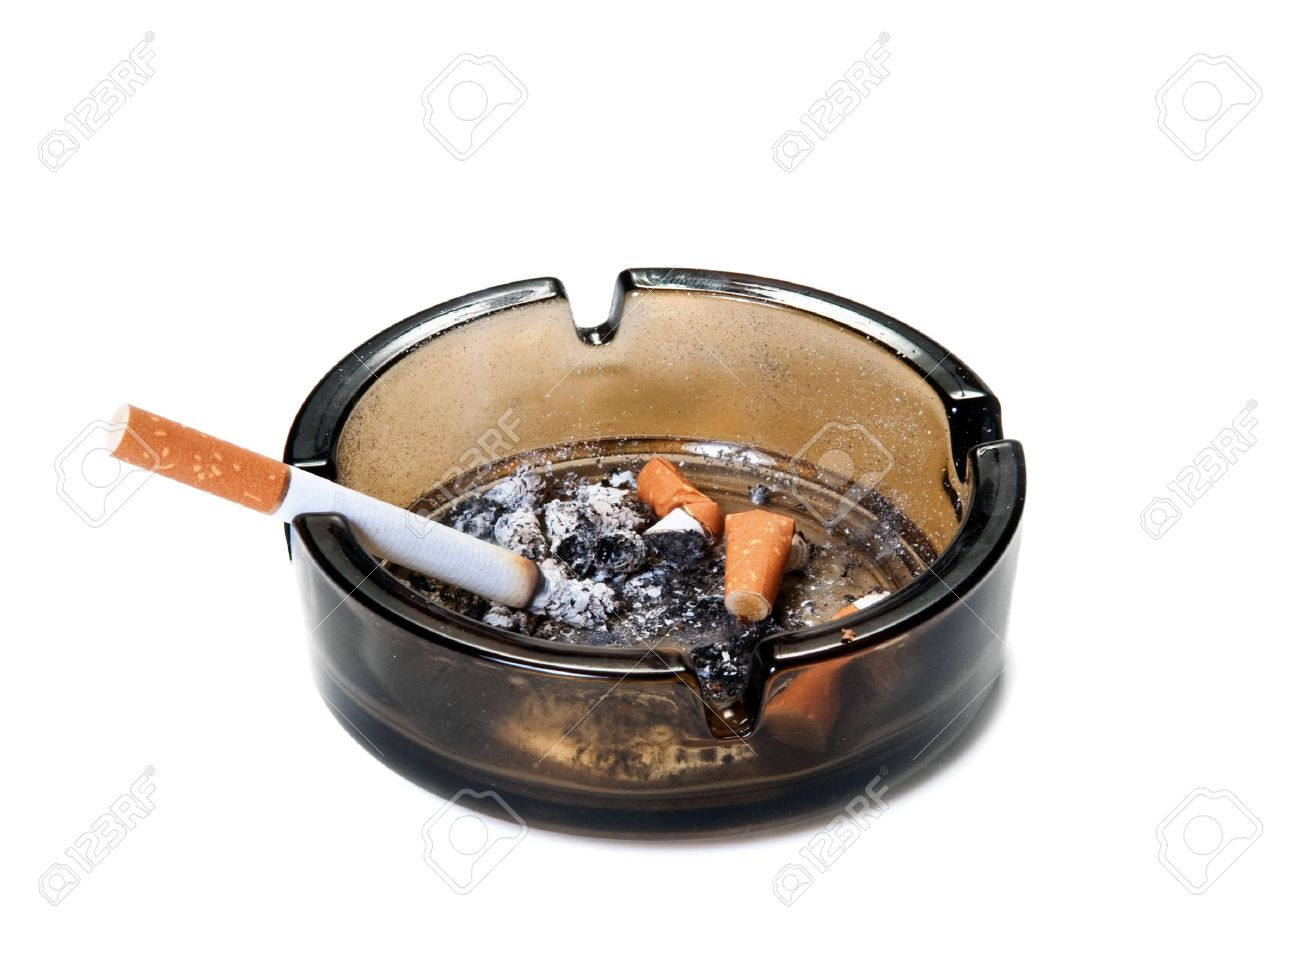 5869682-ashtray-and-cigarettes-on-white-background.jpg